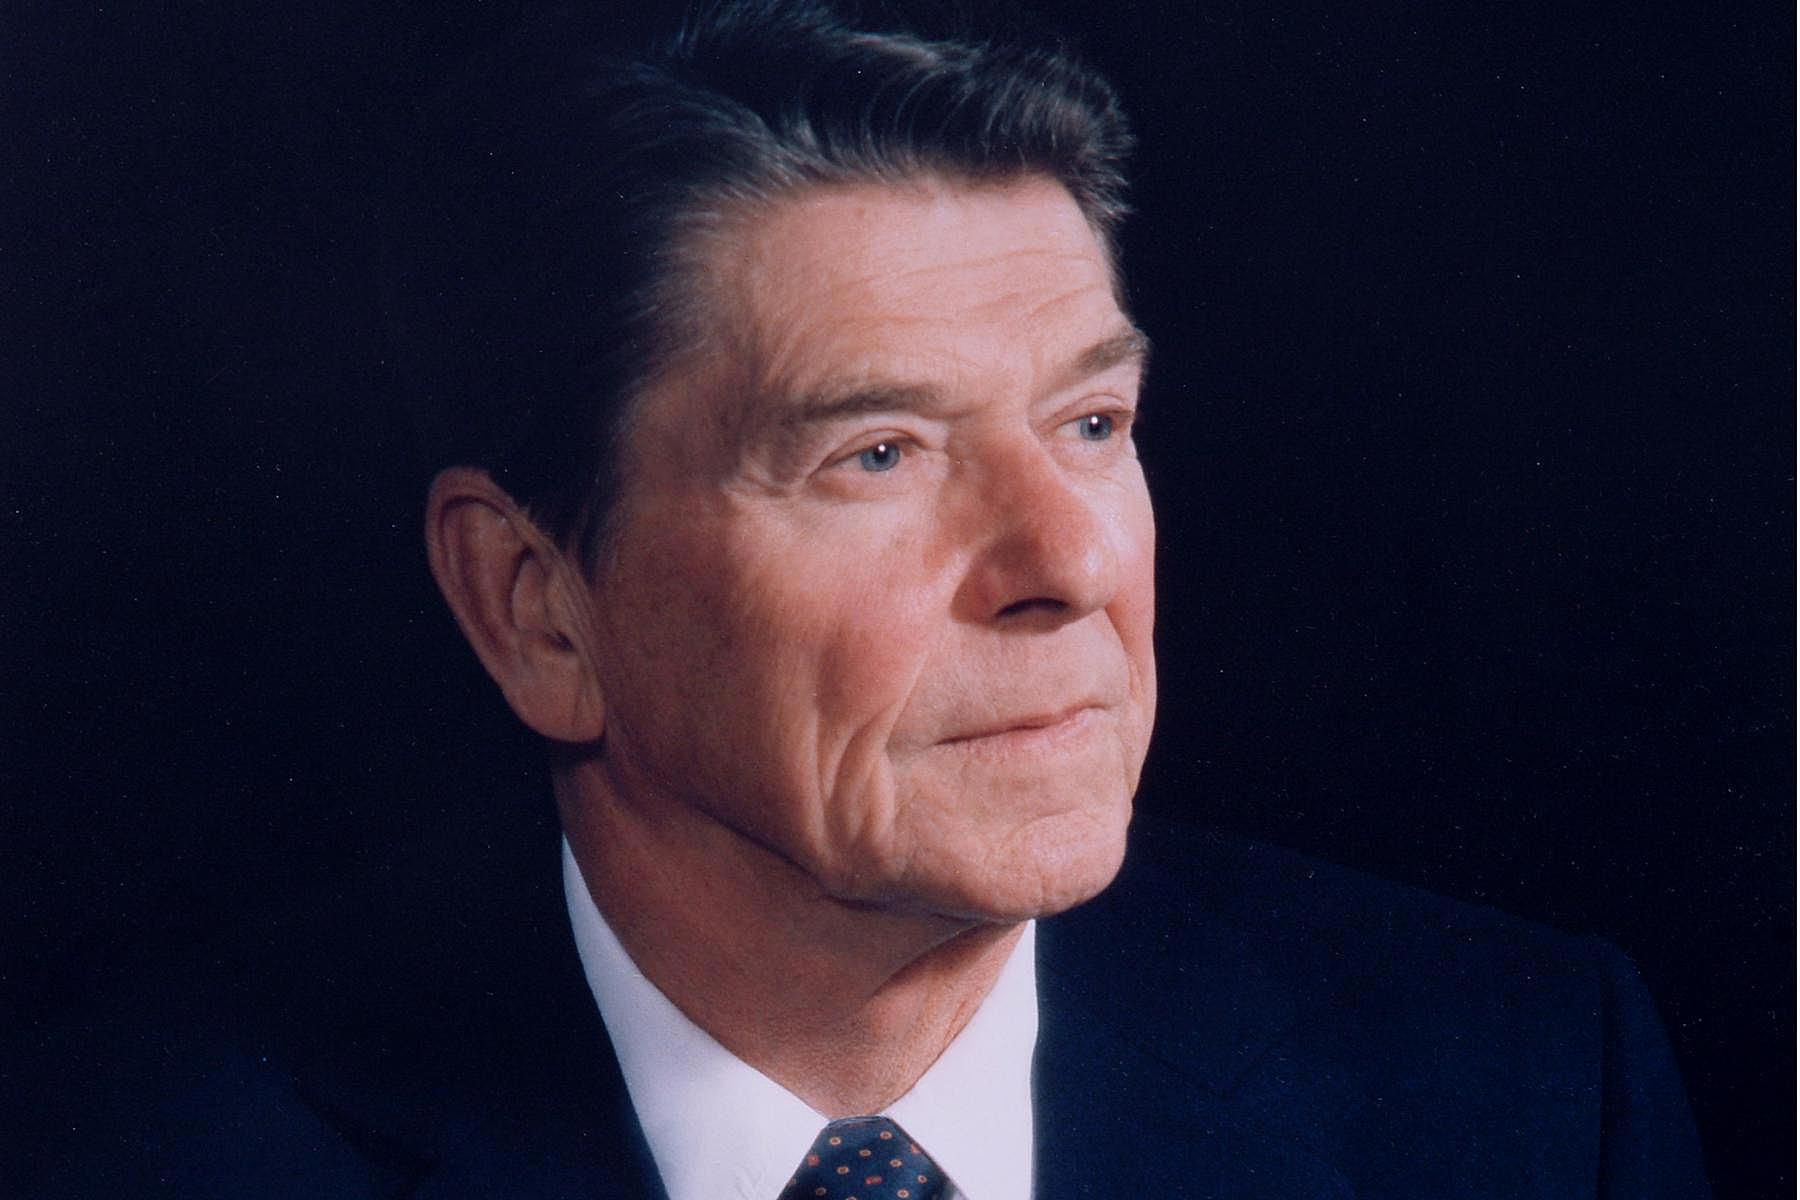 acting pictures of ronald reagan - HD1800×1200